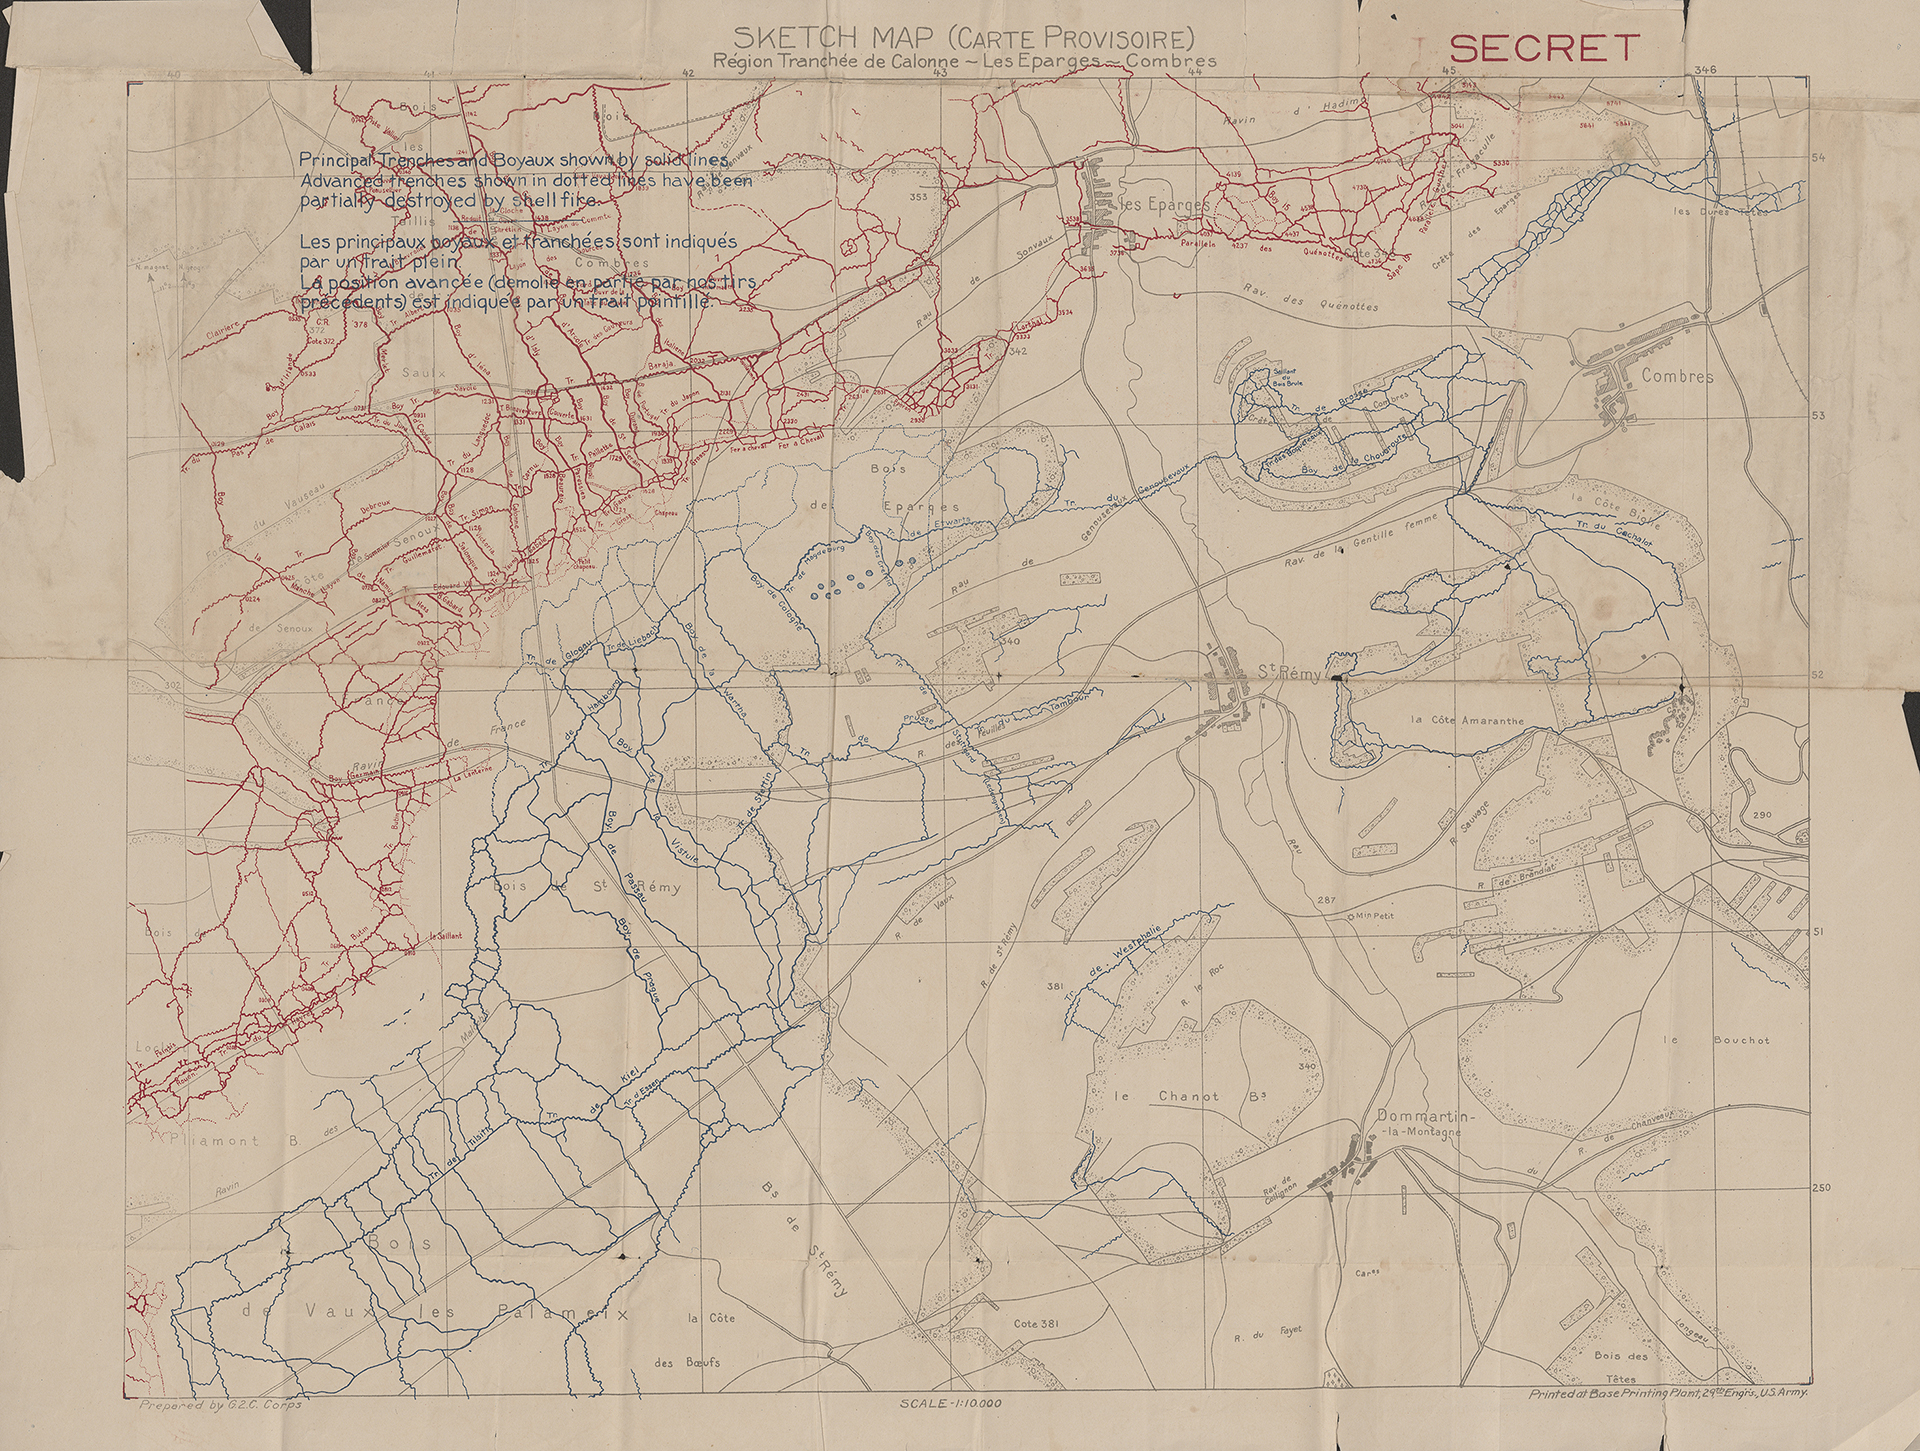 This Sketch Map shows the trenches in the Meuse region of France. The red represents the Allied Forces and the blue German.